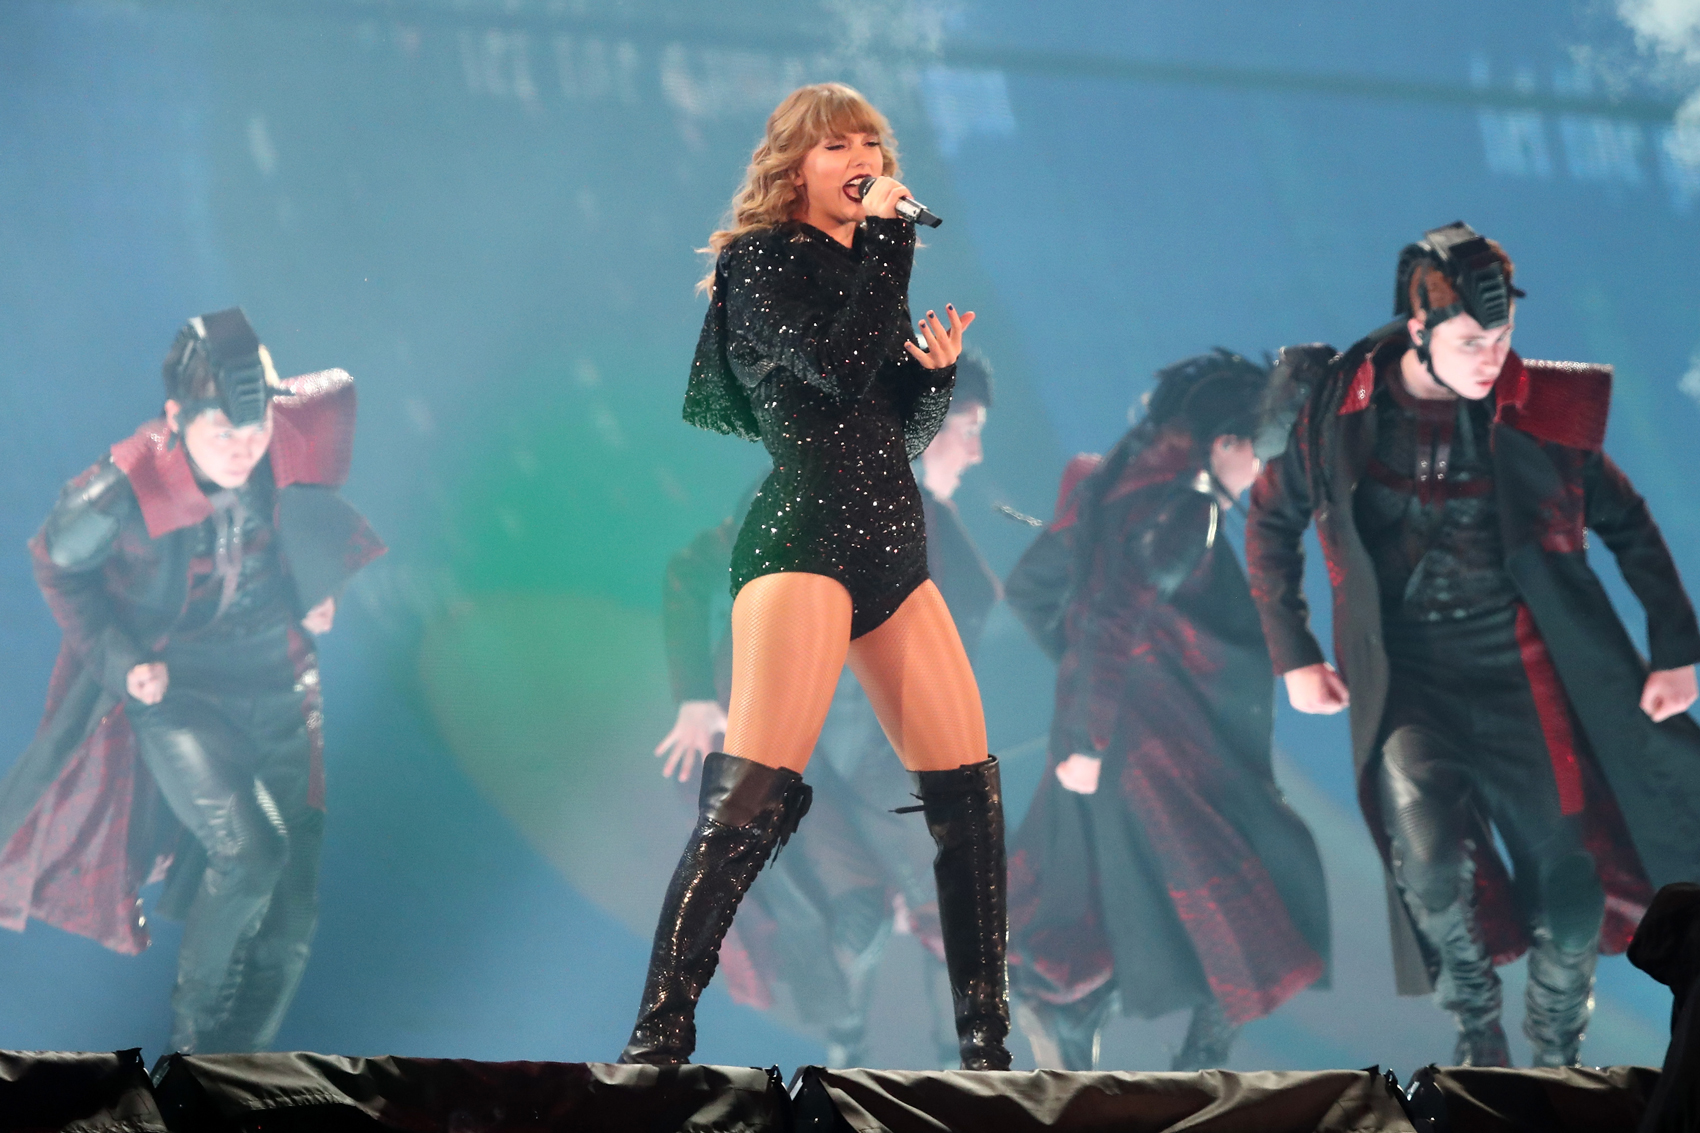 Taylor Swift Is About to Release a New Single. The Stakes Are High - Rolling Stone